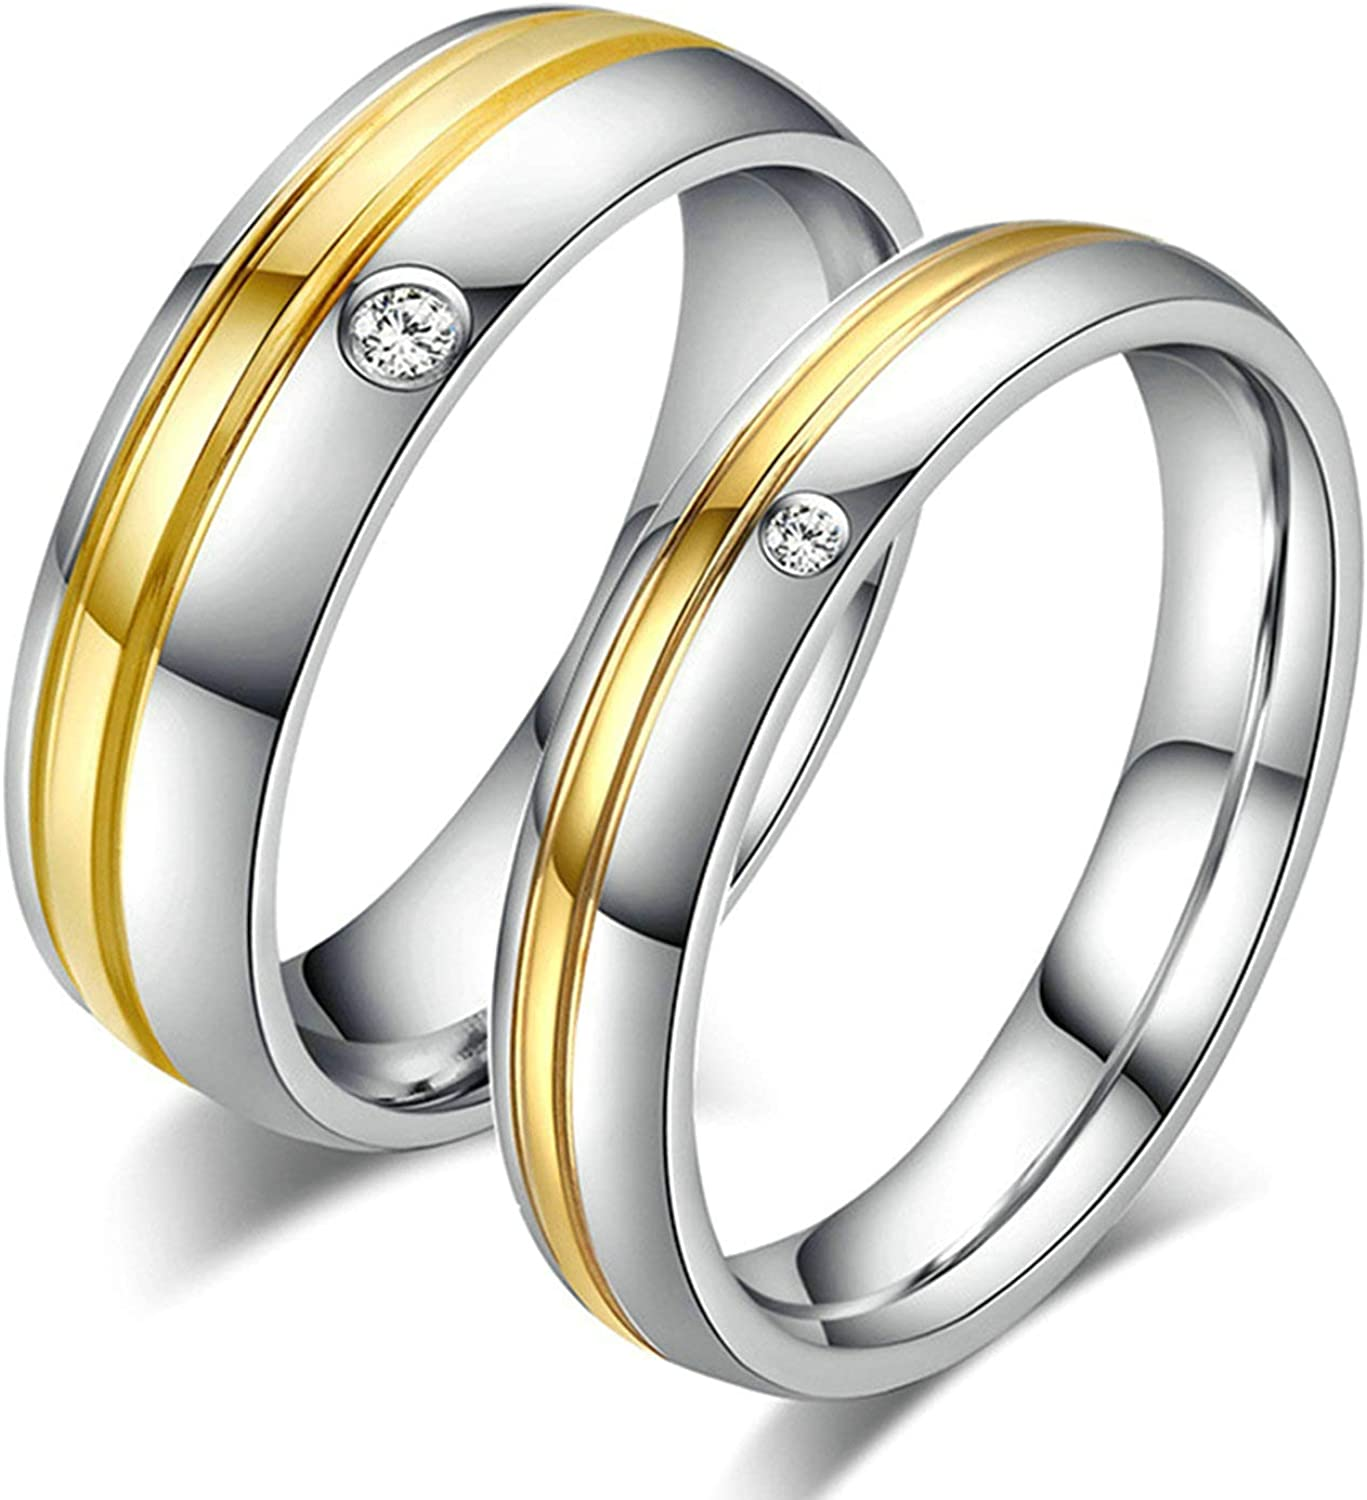 AMDXD Jewelry Wedding Band Couple Gold Stripe with Cubic Zirconia Silver Gold Stainless Steel Rings Men 6 MM,Single Sale